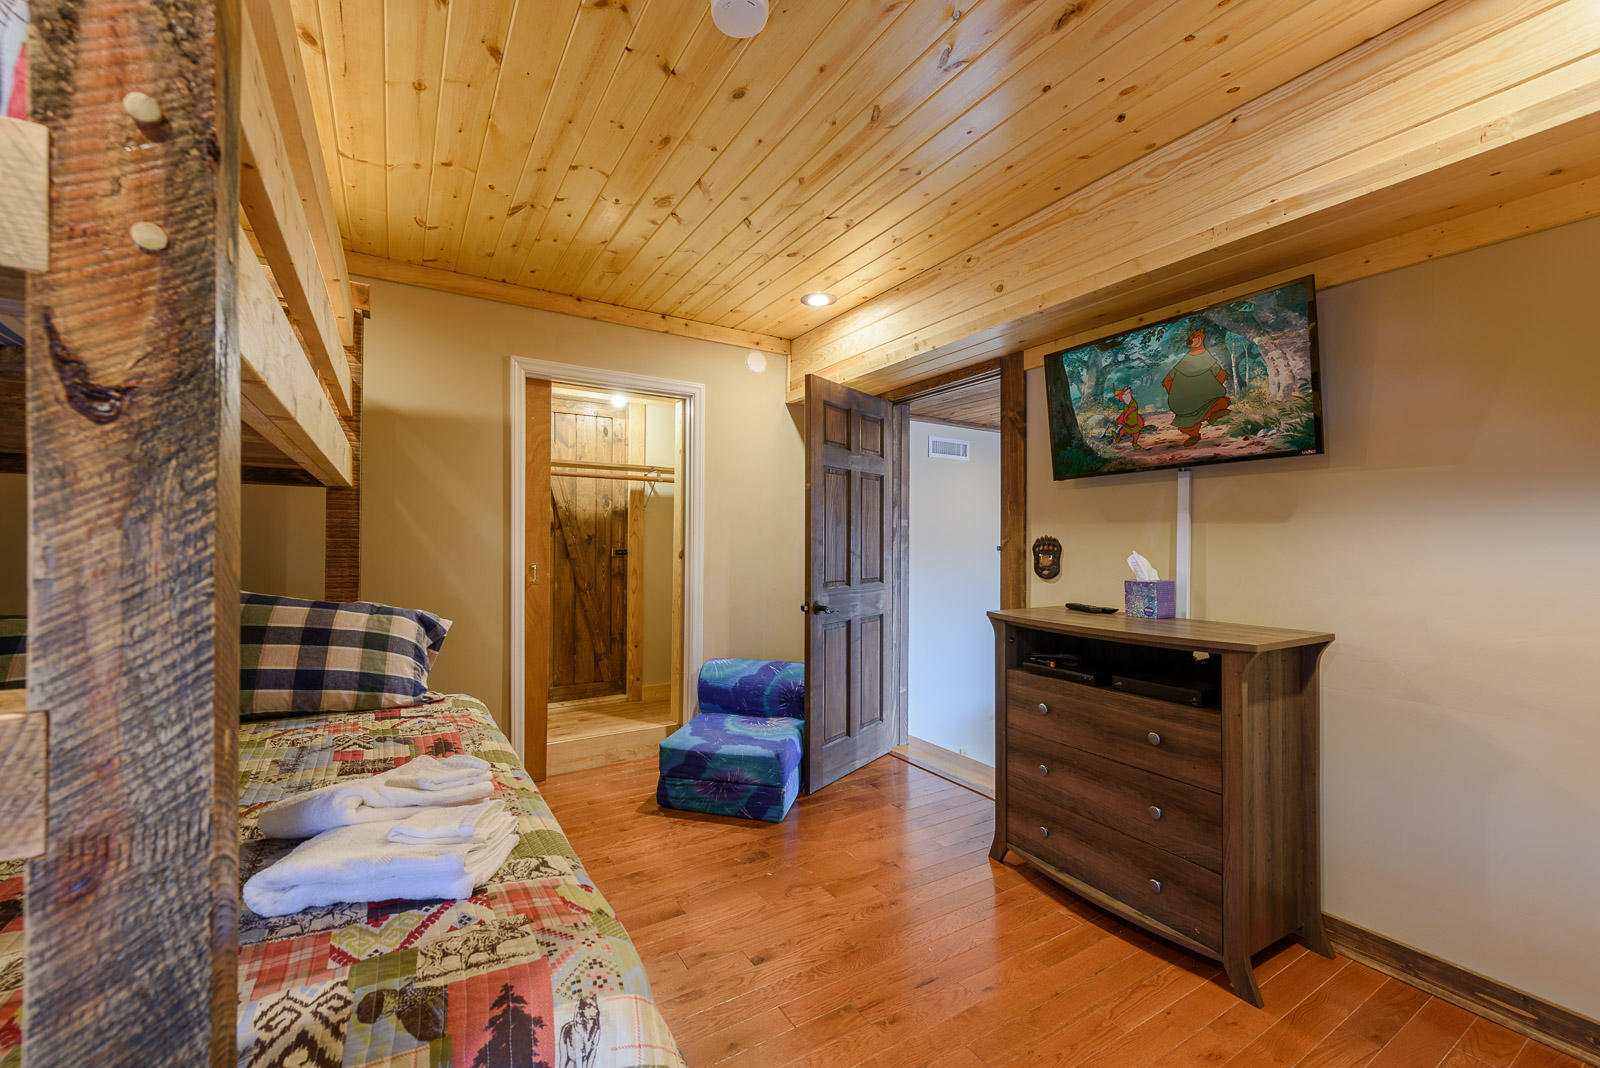 Downstairs Bunk Room with 2 Custom Bunk Beds and HDTV